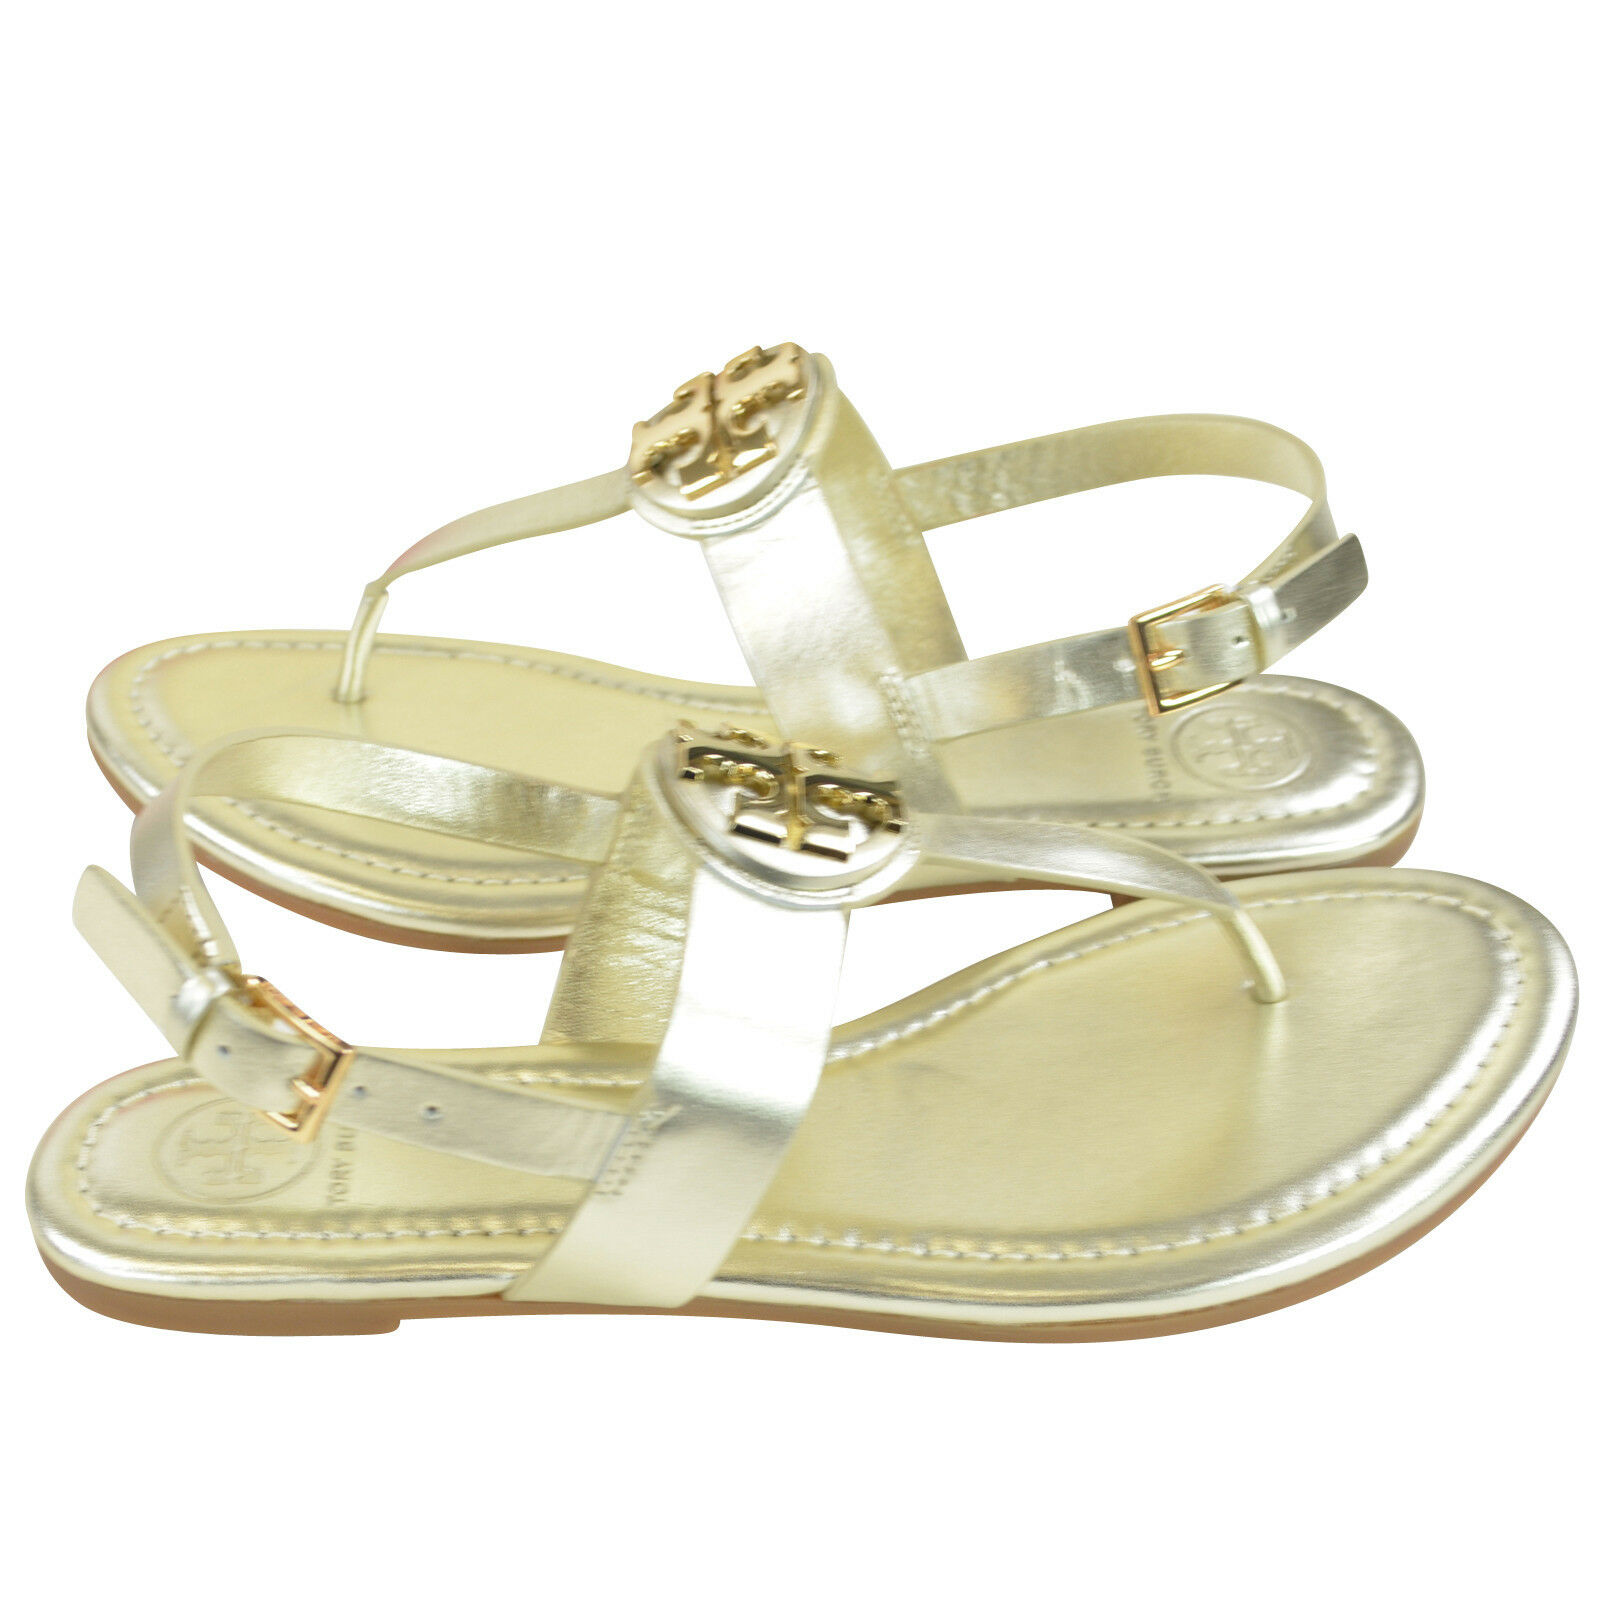 7b22aab33 A gleaming logo medallion takes center stage on a beautifully smooth thong  sandal fitted with a slim slingback strap. - Leather upper and  lining rubber sole